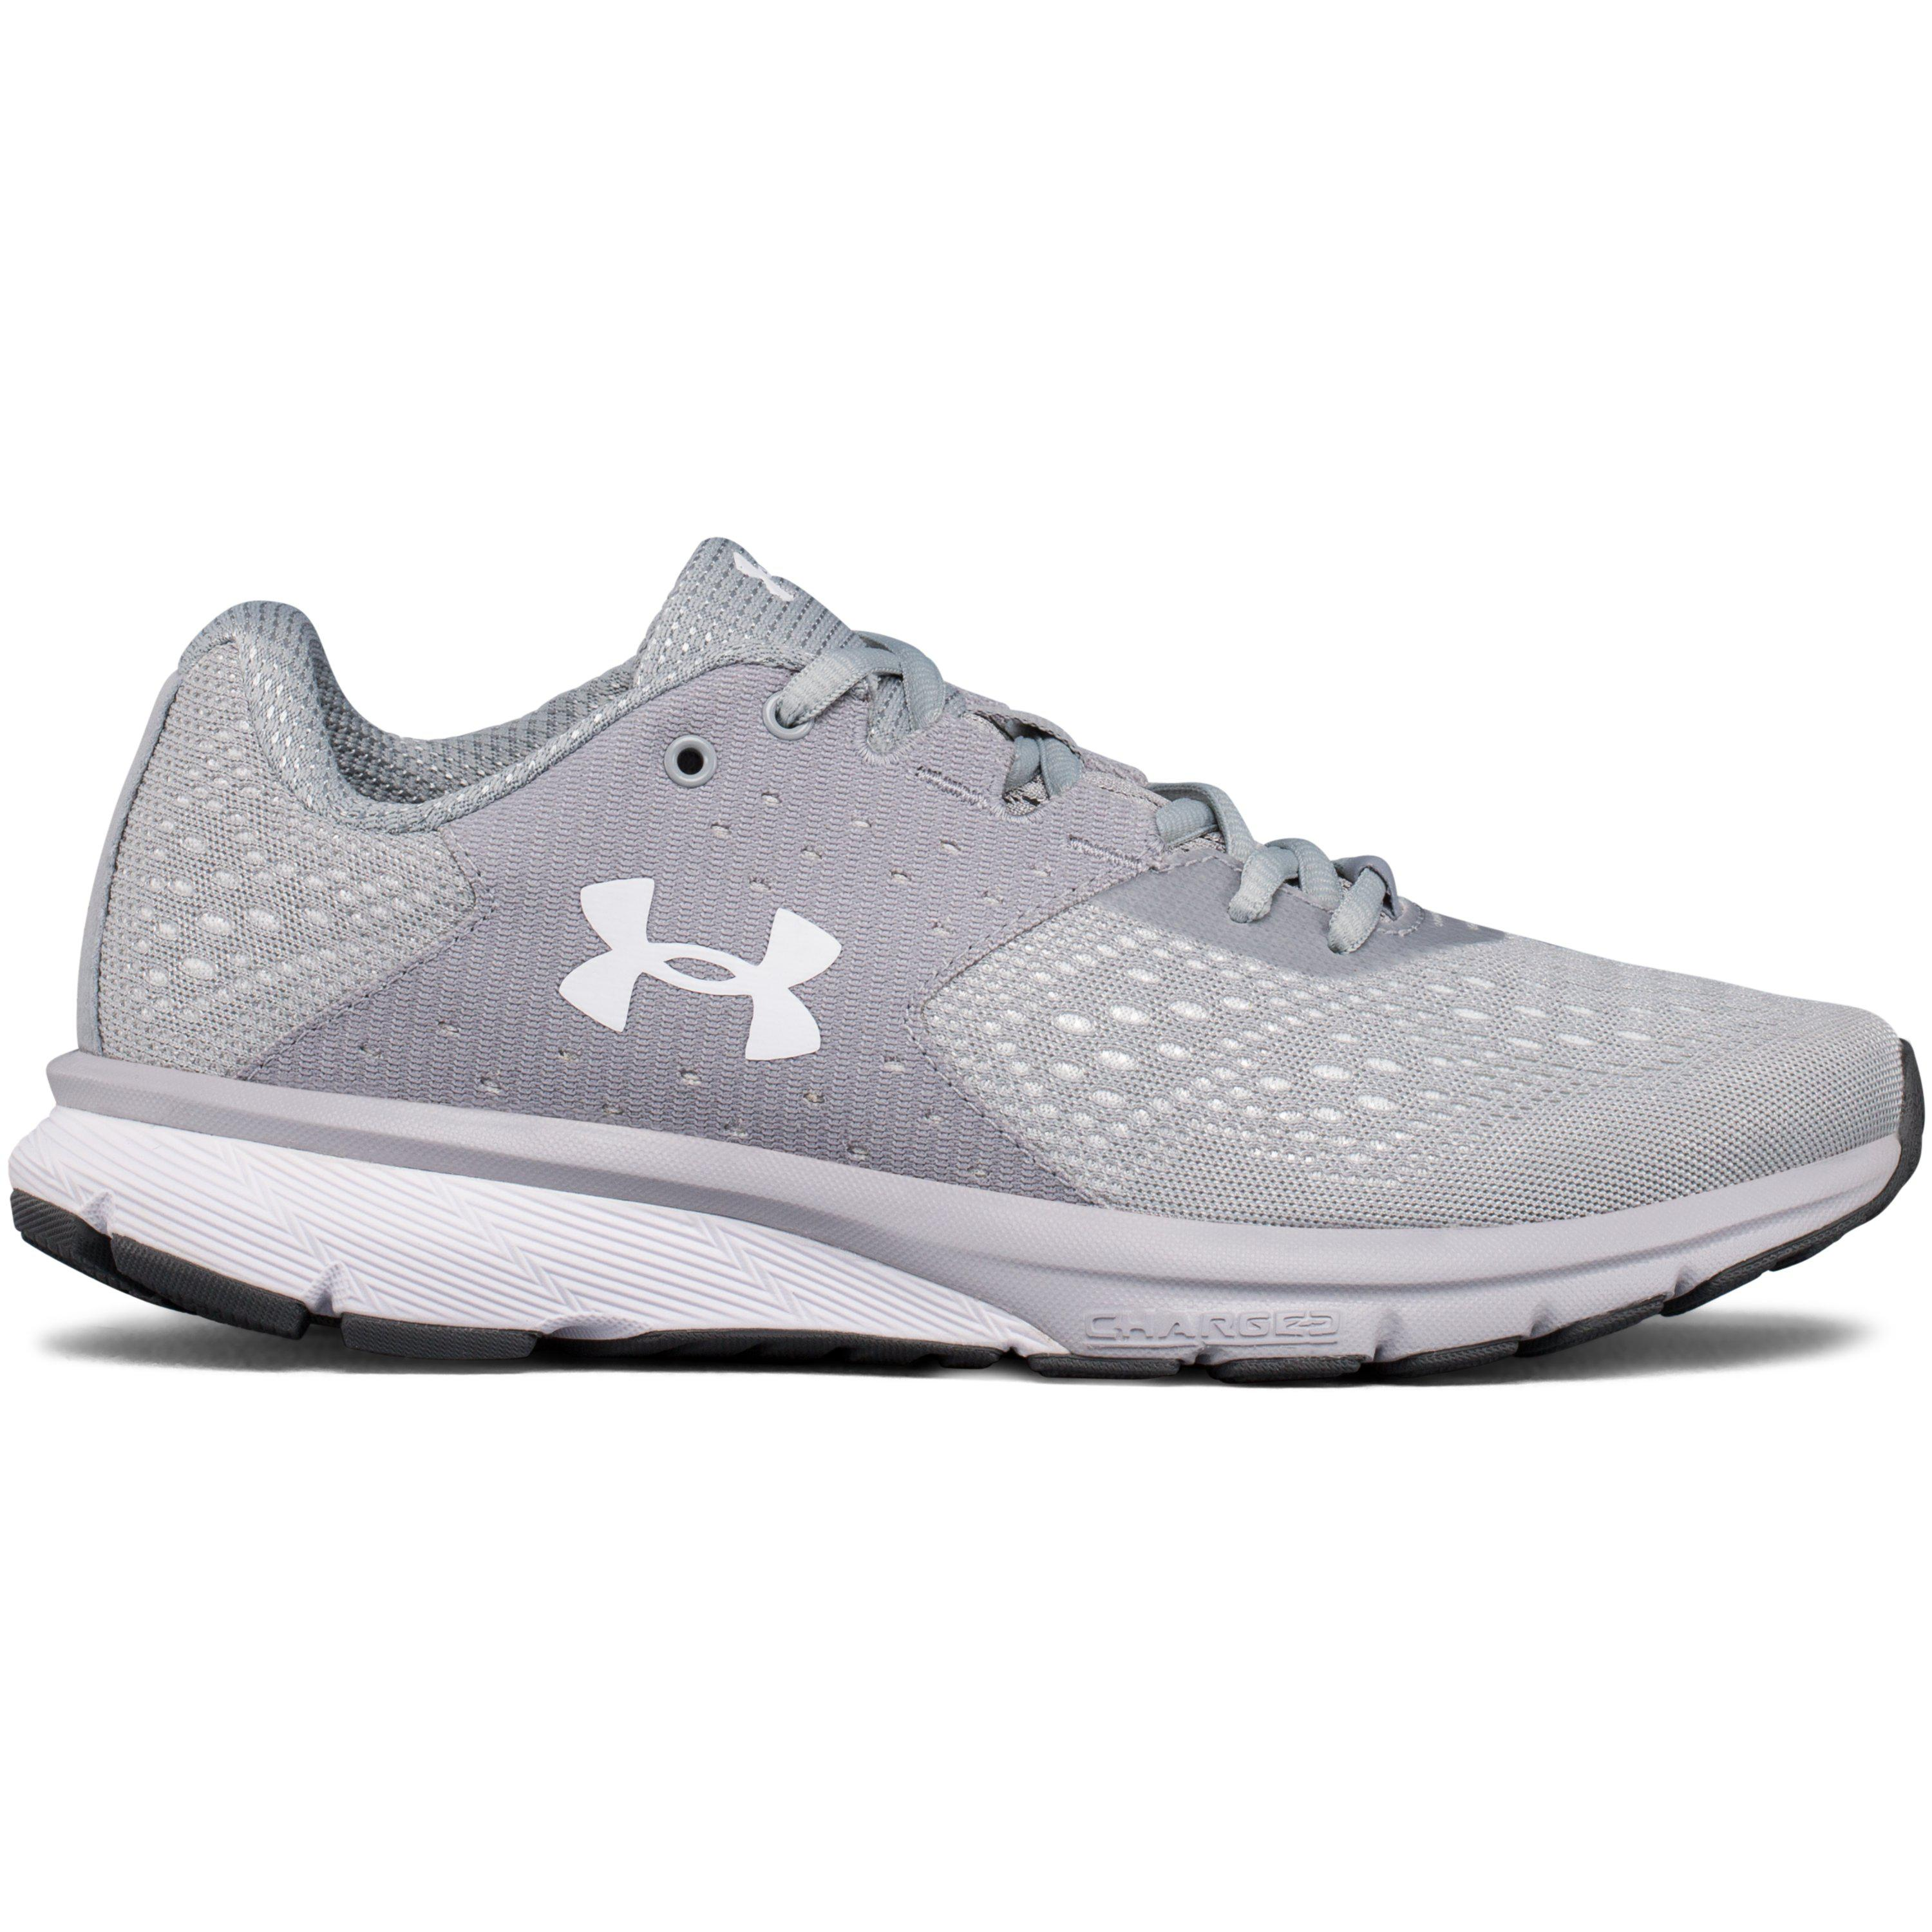 efb504f468 Under Armour - Gray Women's Ua Charged Rebel Running Shoes - Lyst